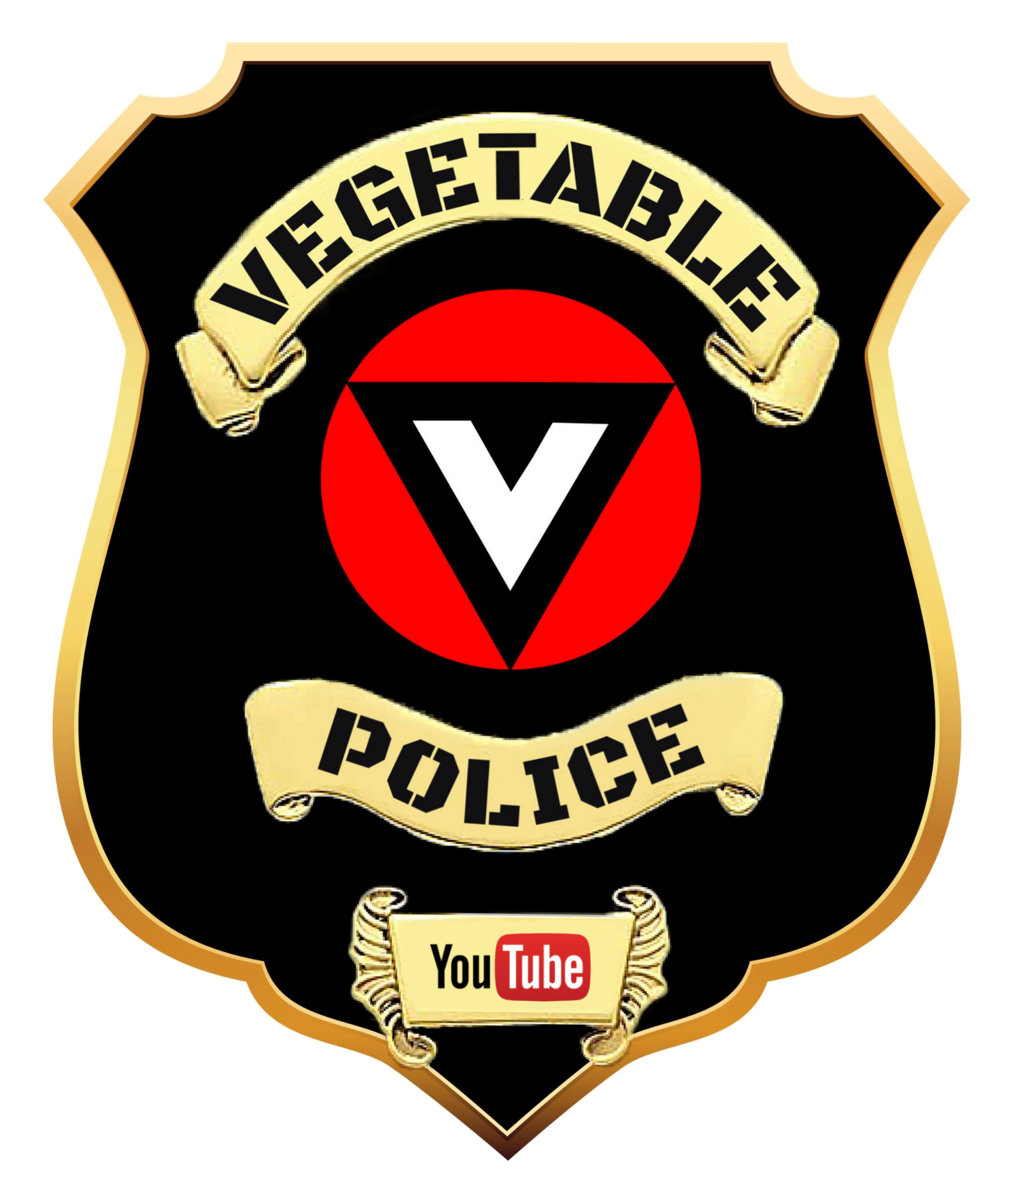 law of attraction dark child vegetable police productions